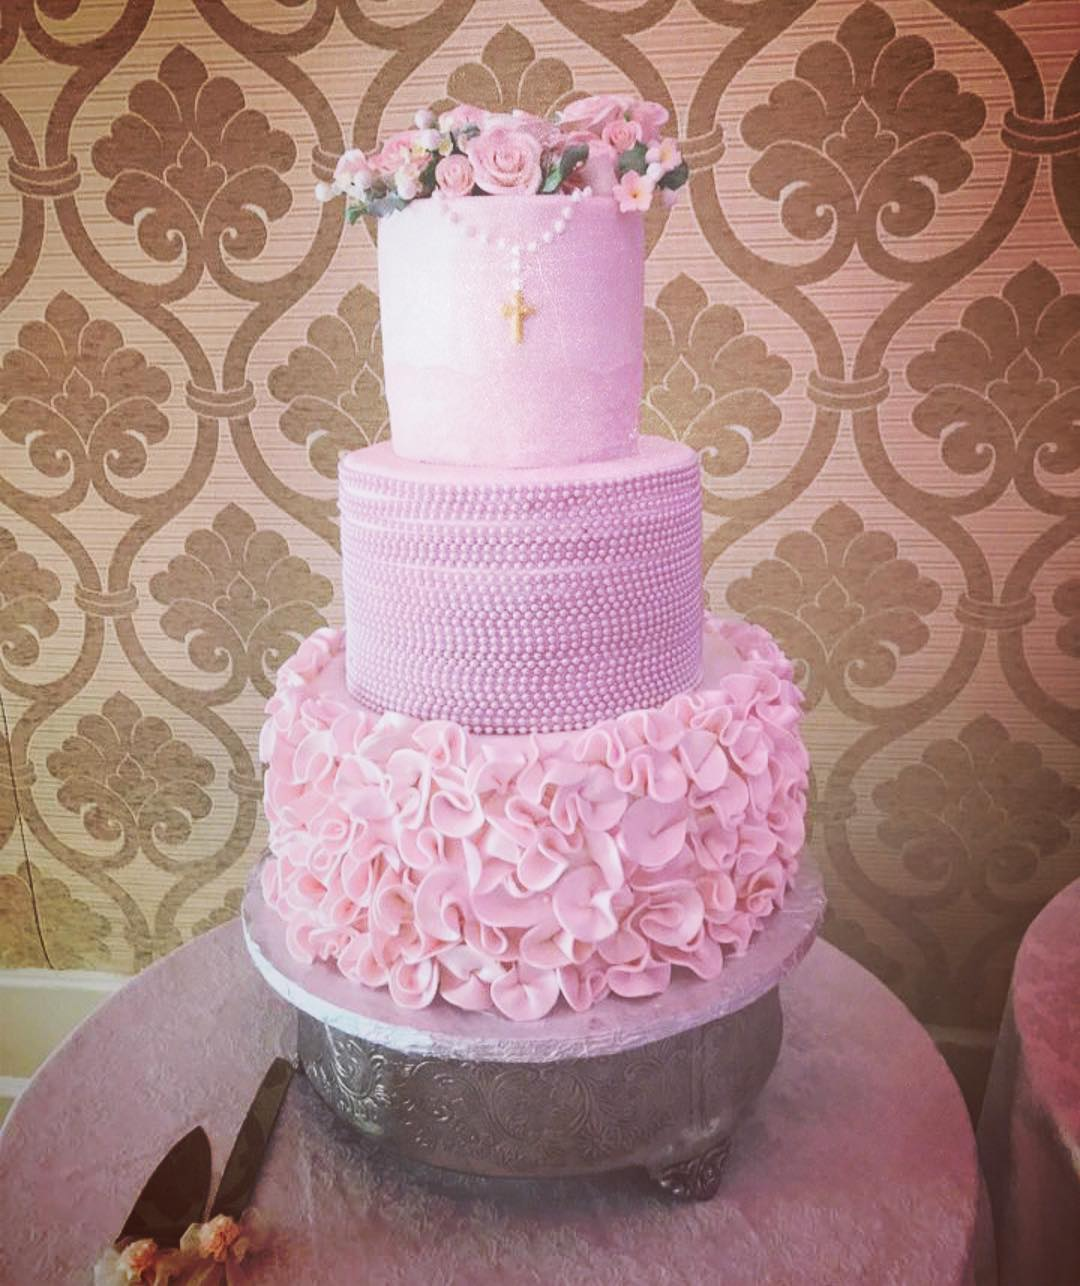 Pink 3 tier cake